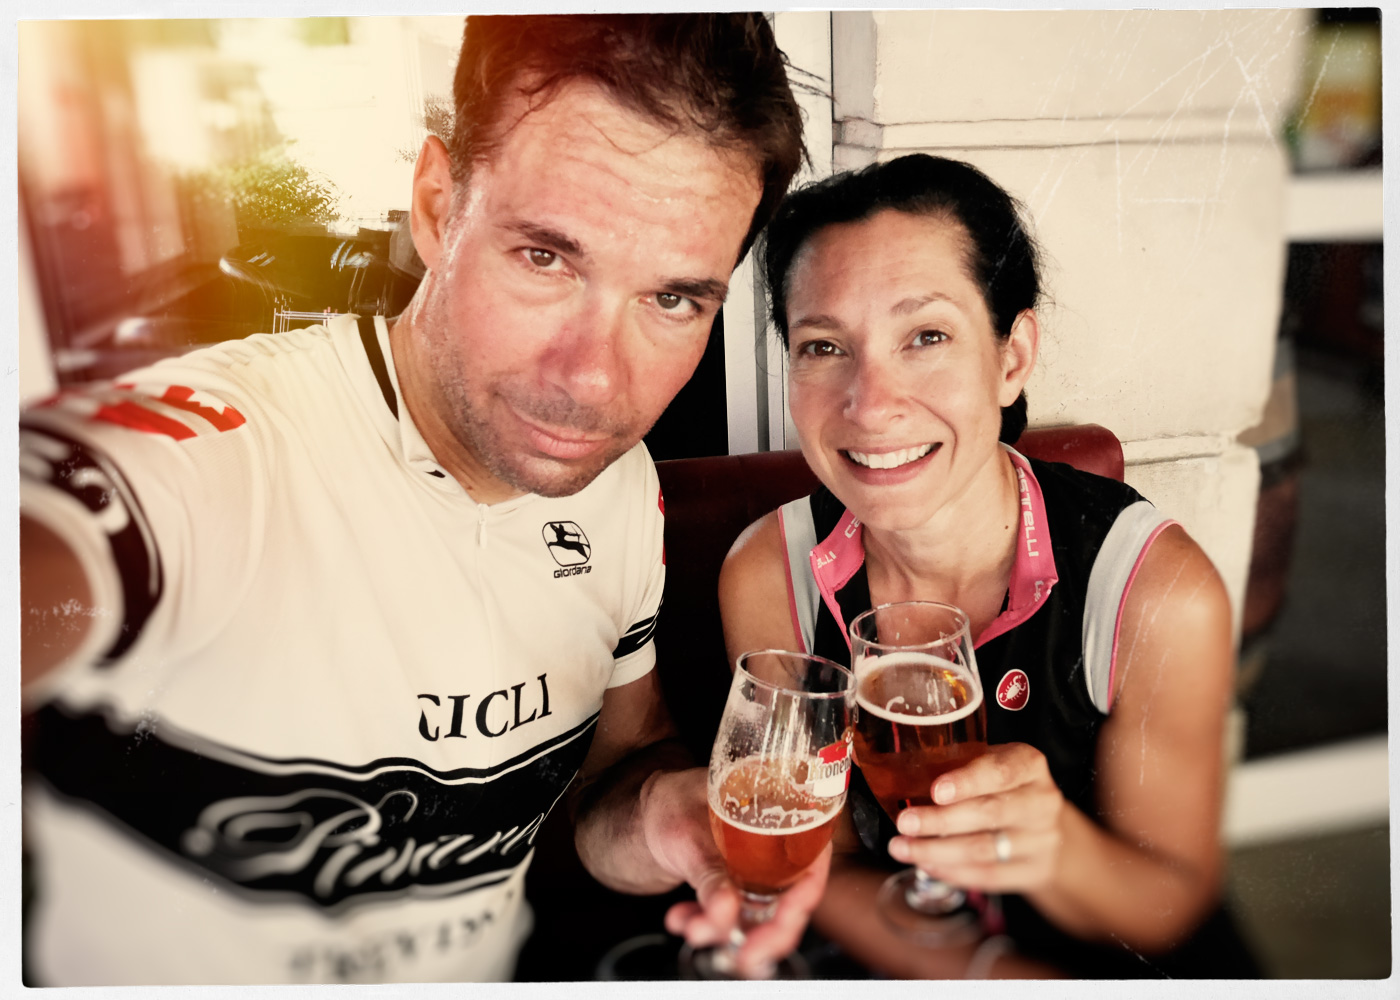 Having a beer with Jay, post ride, at our local little bar in Vacqueyras.